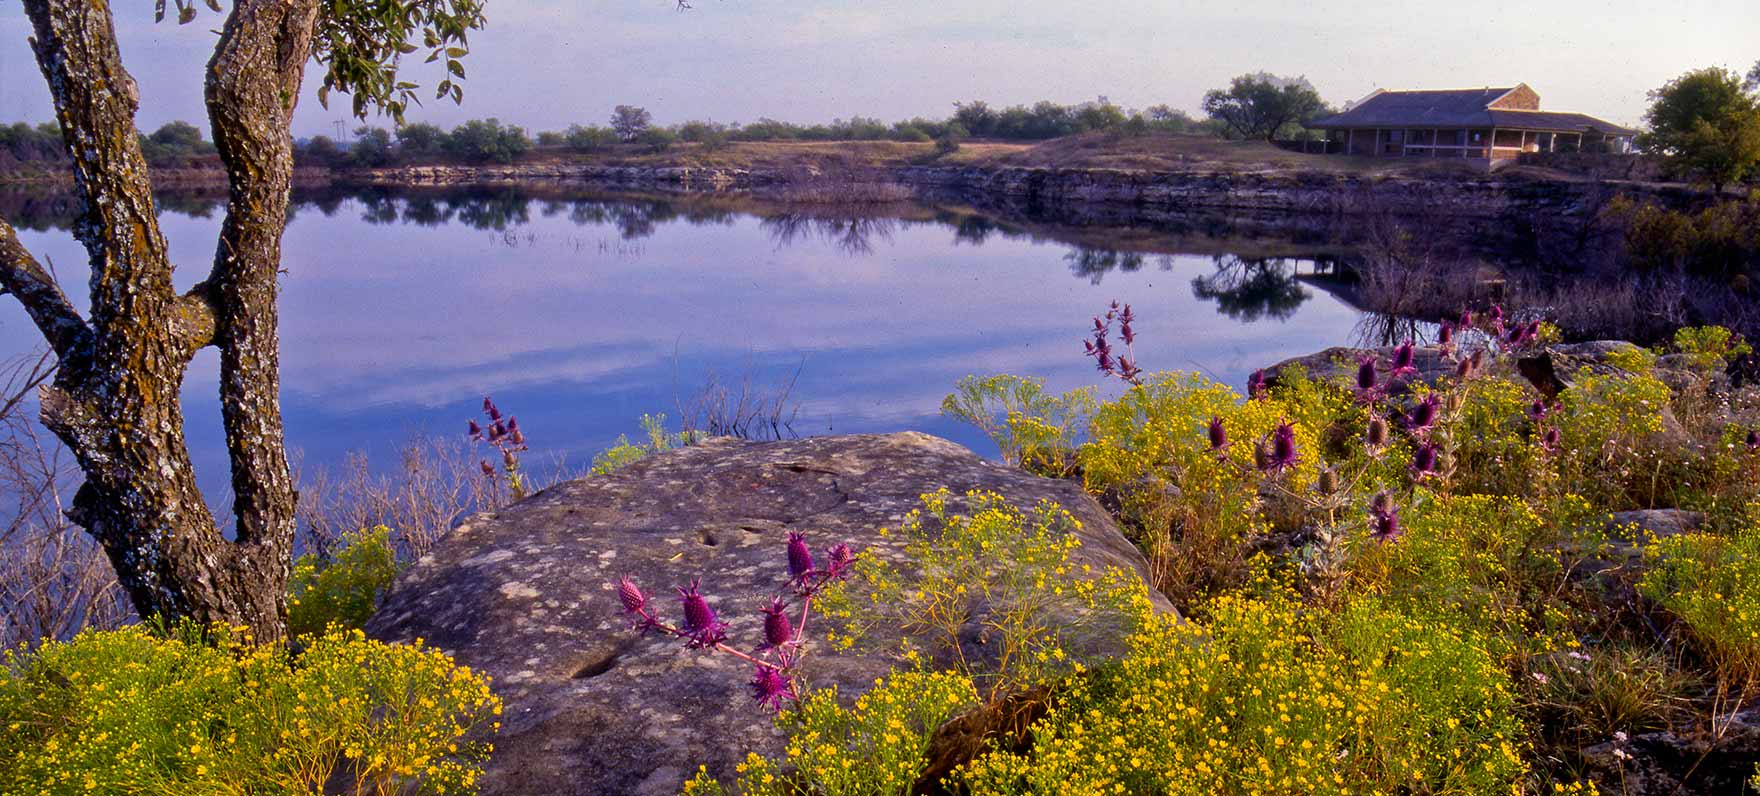 13 Of The Least-Known, Hidden Gem State Parks In Texas